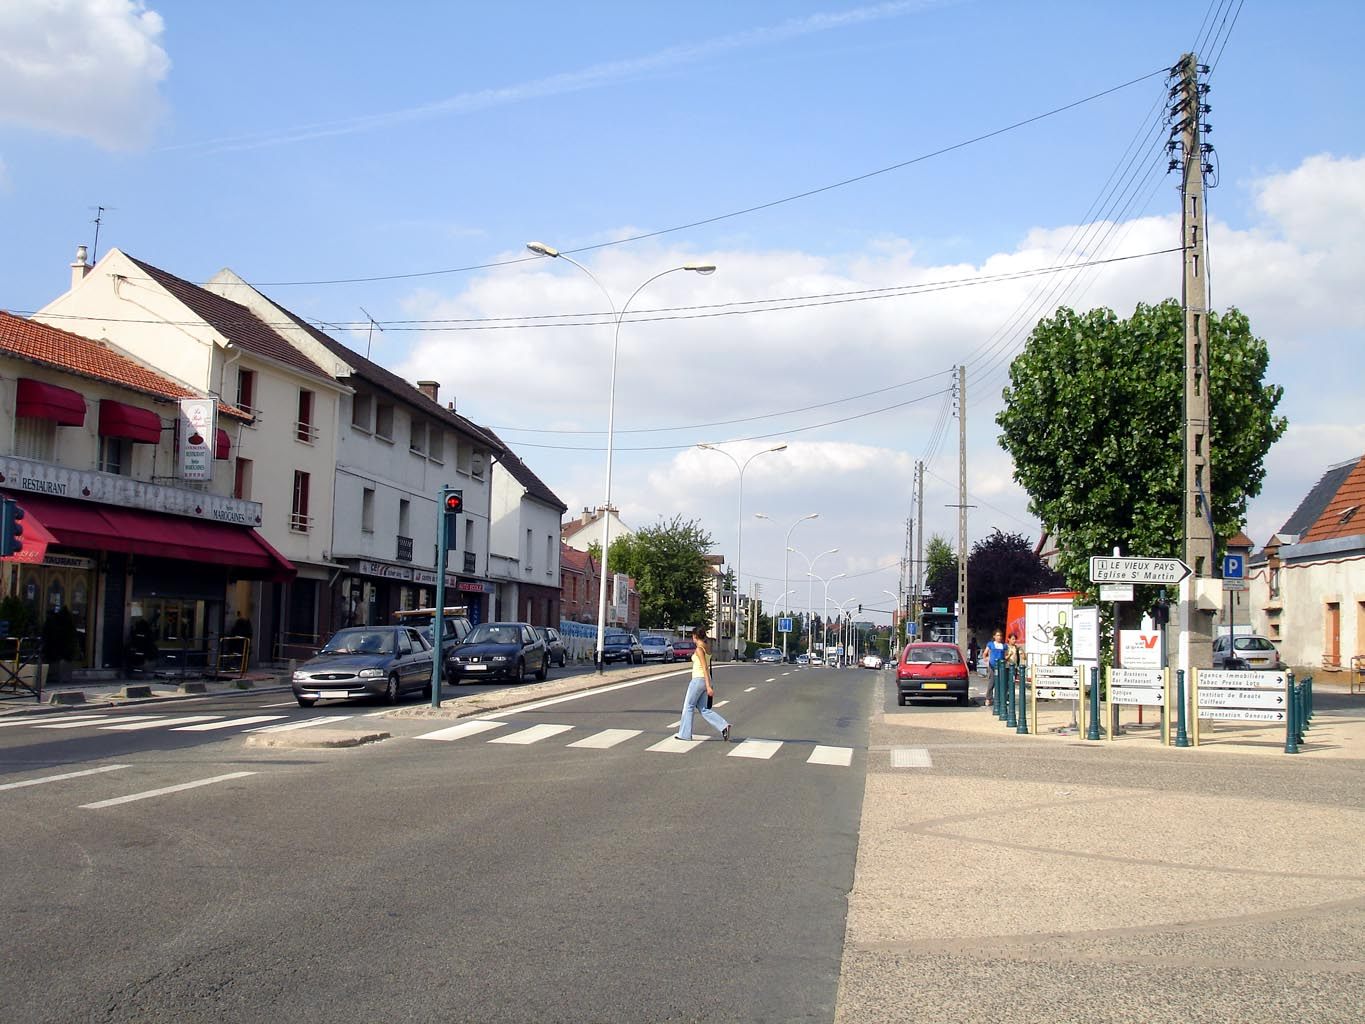 garges l s gonesse wikipedia